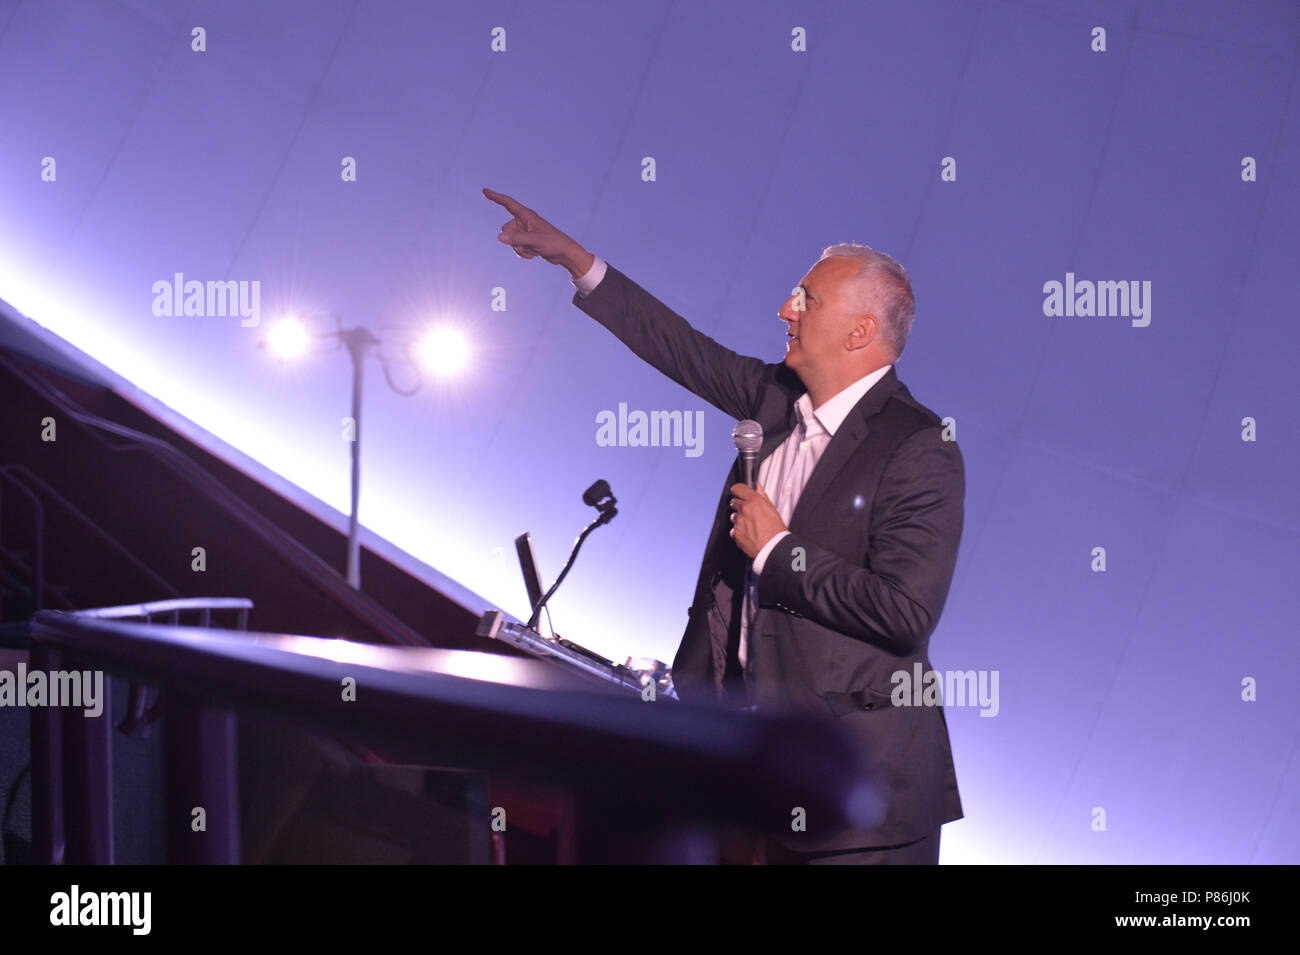 Garden City, New York, USA. 21st June, 2018. Former NASA space shuttle astronaut MIKE MASSIMINO, a Long Island native, is at podium on stage as he points his finger upward while giving free lecture in the JetBlue Sky Theater Planetarium at the Cradle of Aviation Museum. Credit: Ann Parry/ZUMA Wire/Alamy Live News - Stock Image